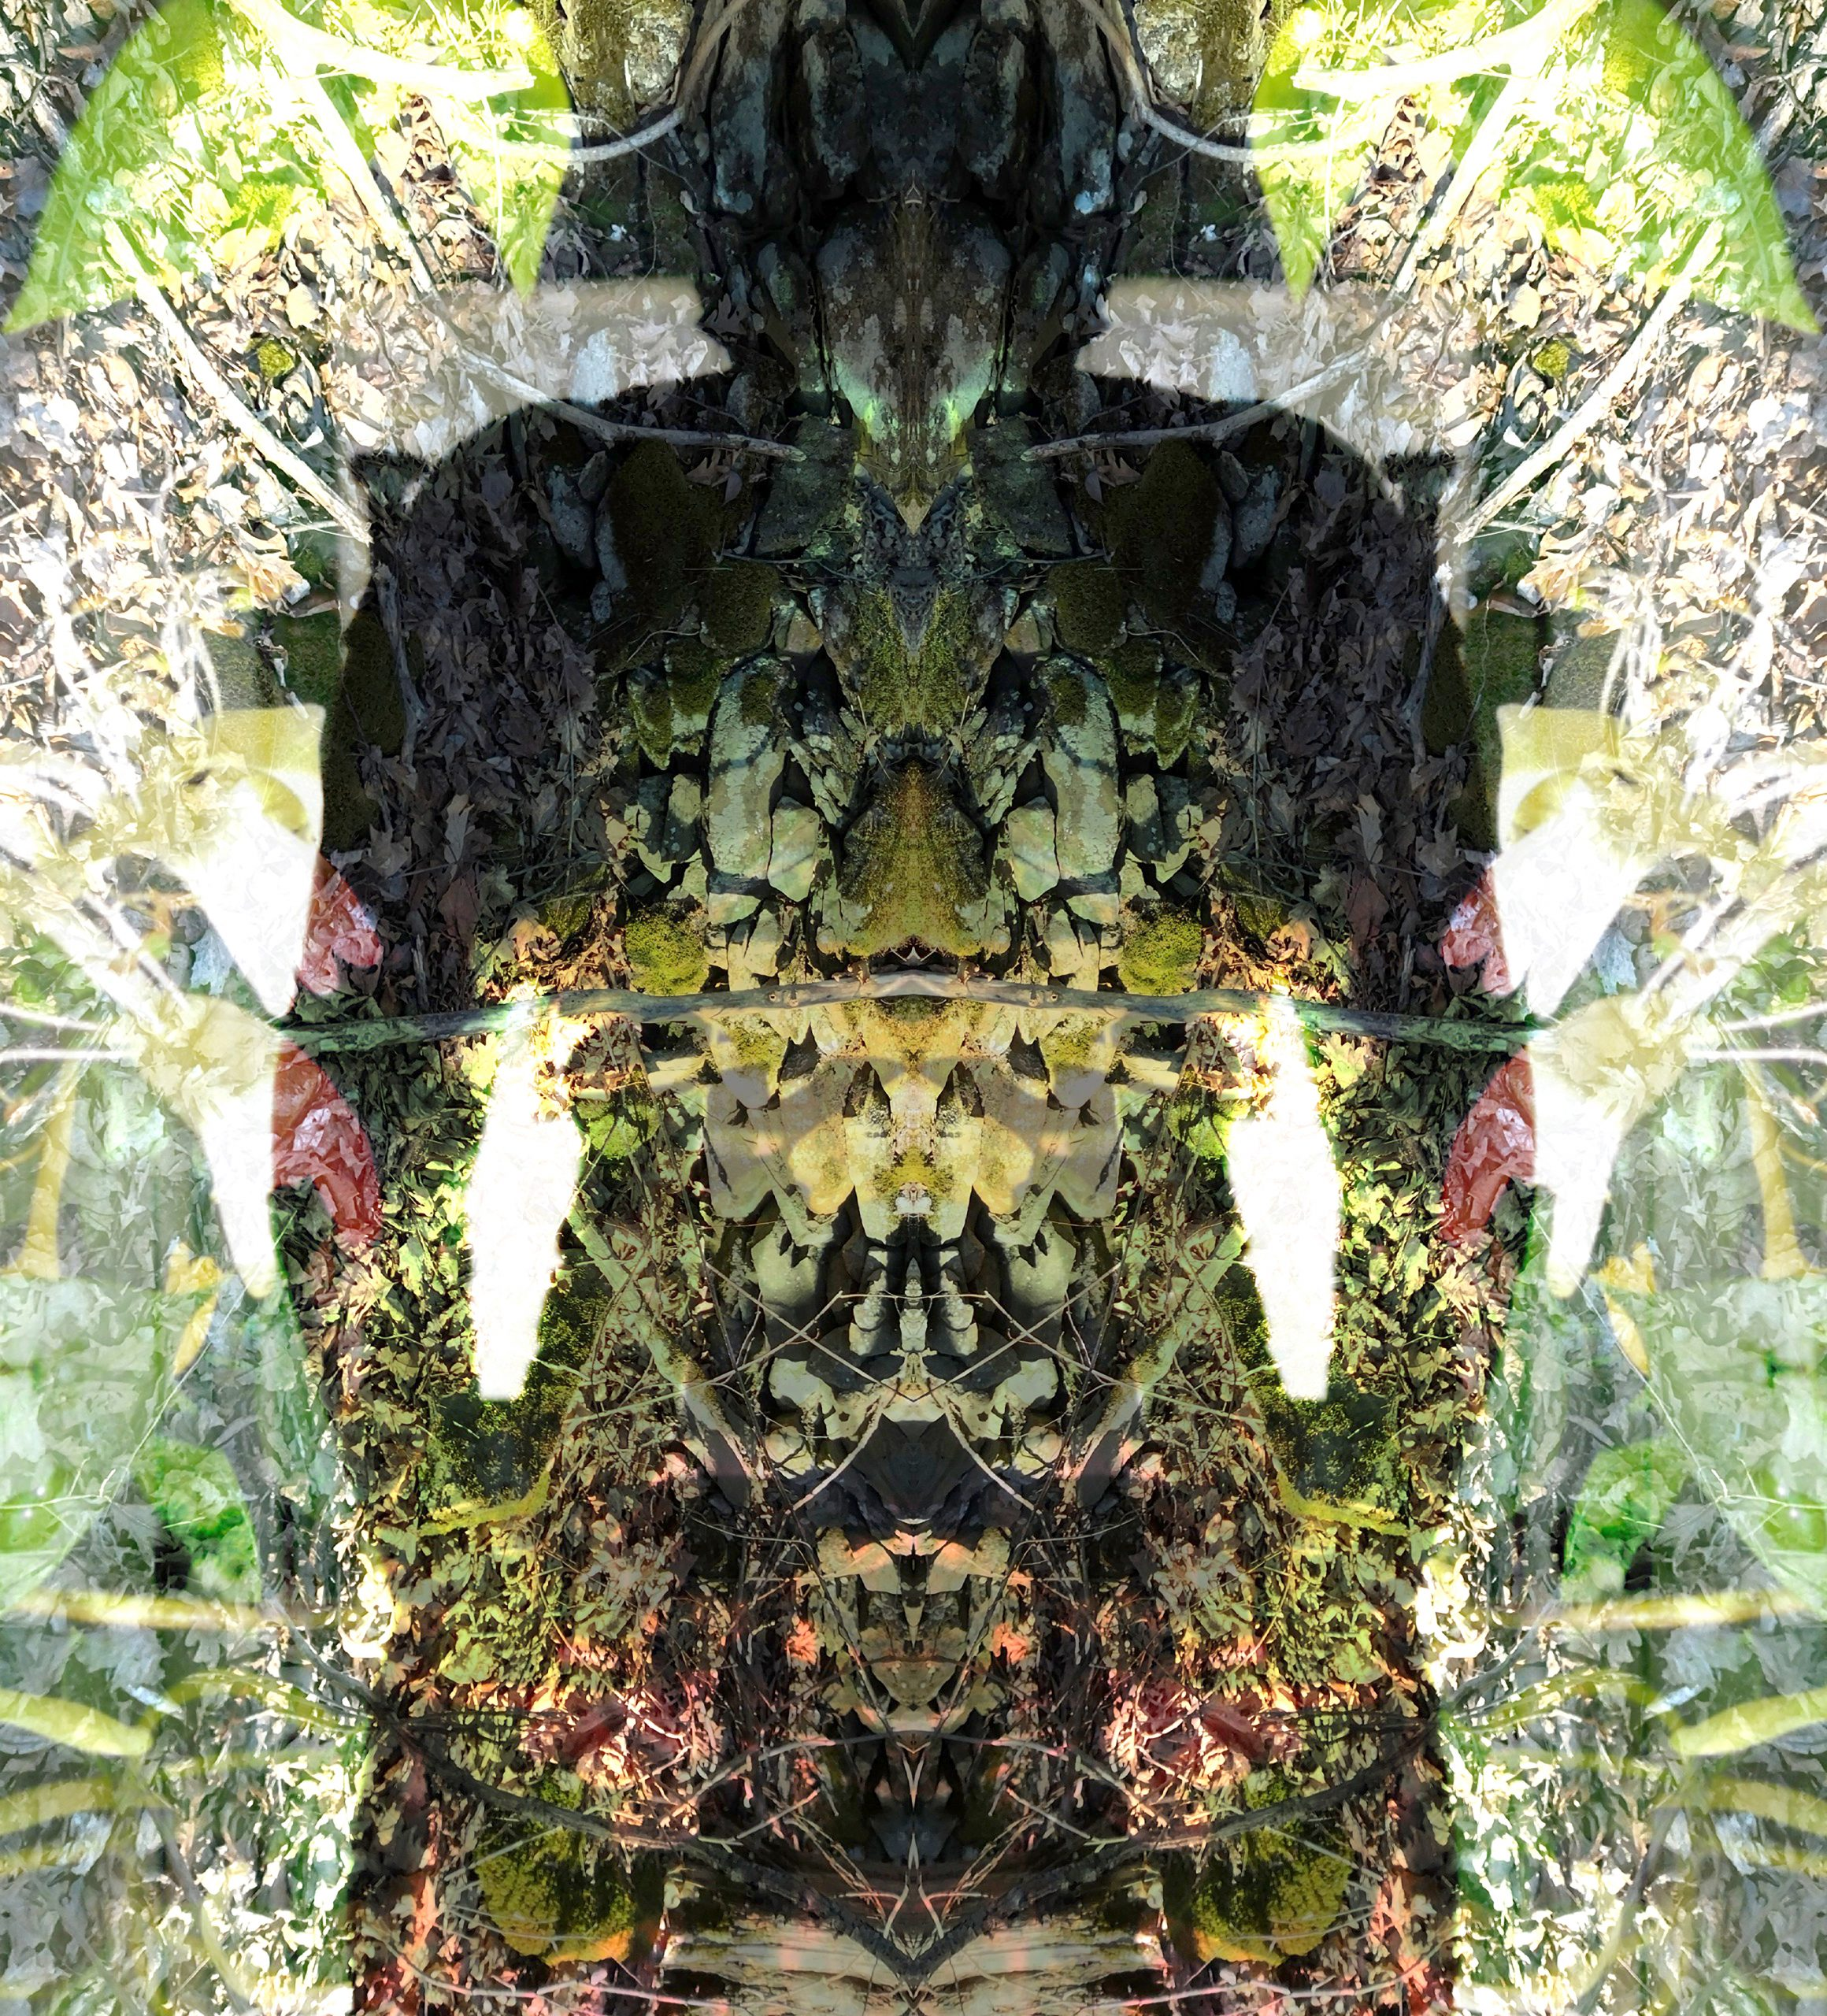 """Jessica Ann Willis, 6. Freyja/Fólkvangr, 2020, Pigment Print, 13""""x13"""", From Norse mythology, Freyja is a goddess associated with love, beauty, fertility, gold, and seiðr. Freyja is the owner of the necklace Brísingamen, rides a chariot pulled by two cats, is accompanied by the boar Hildisvíni, and possesses a cloak of falcon feathers. She has a dwelling in the heavens called Fólkvangr where half of those who die in battle go and will find a place at her table in the hall of Sessrumnir. Freyja is sometimes depicted as a valkyrie."""